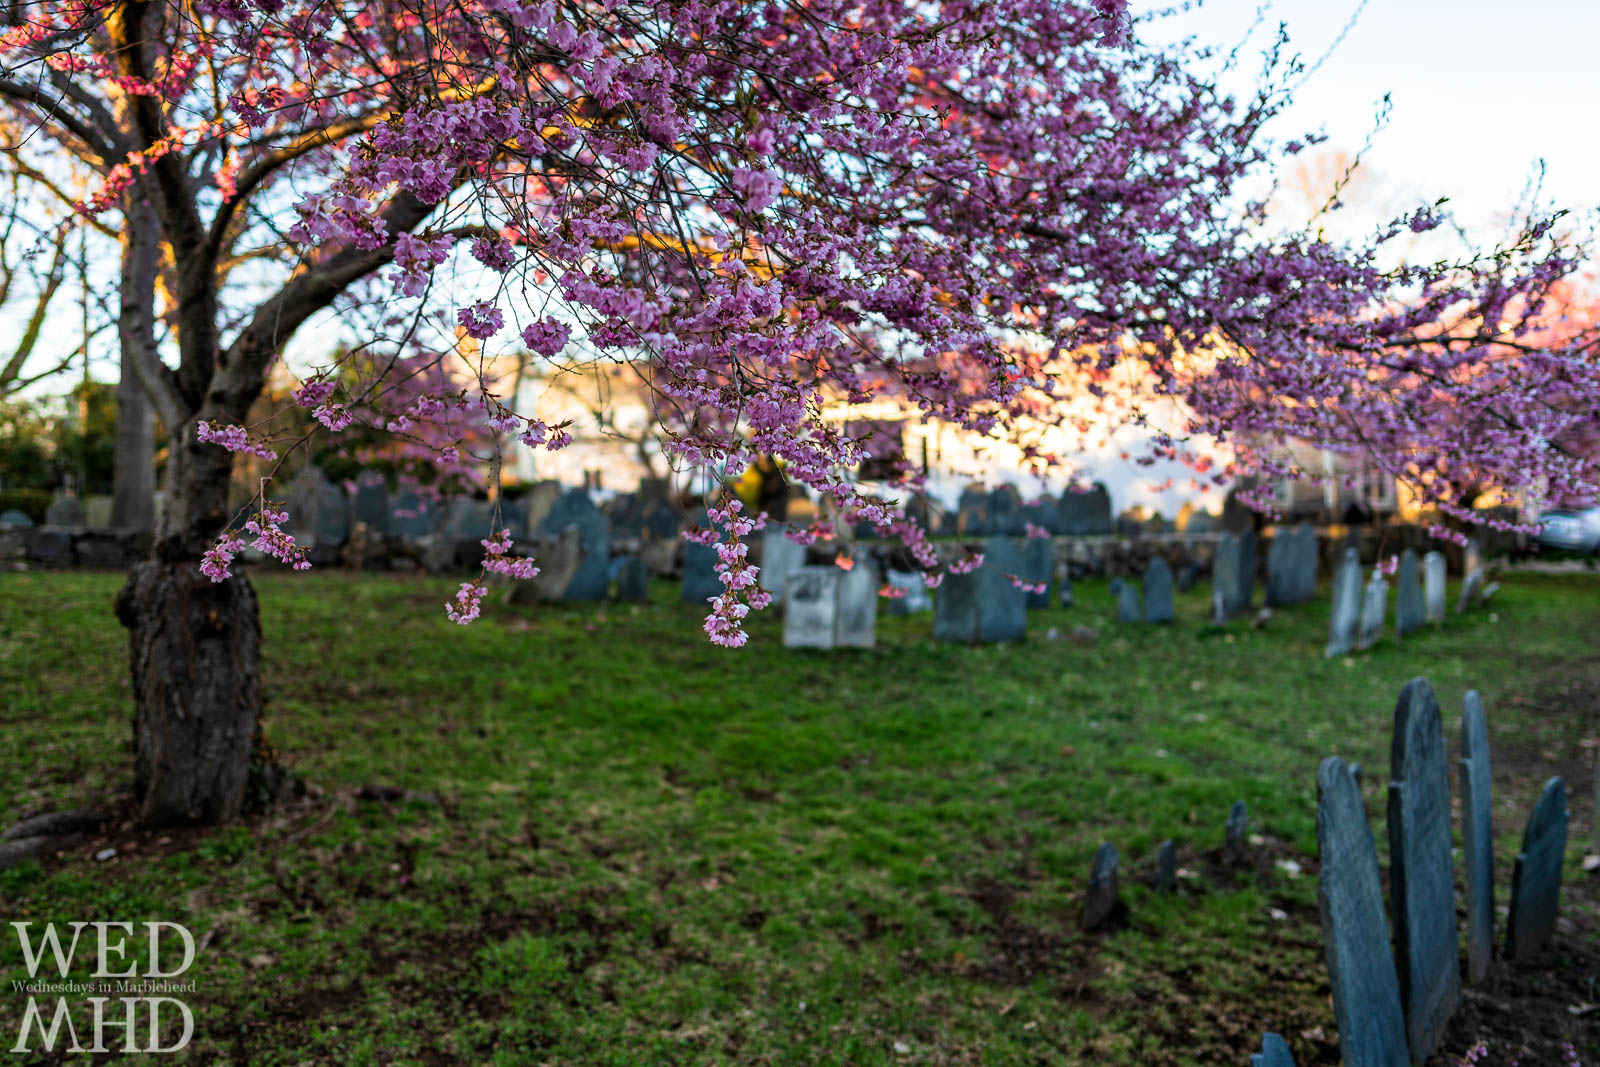 Springs arrival is signaled by cherry blossom season with peak blooms at the Harris Street Cemetery